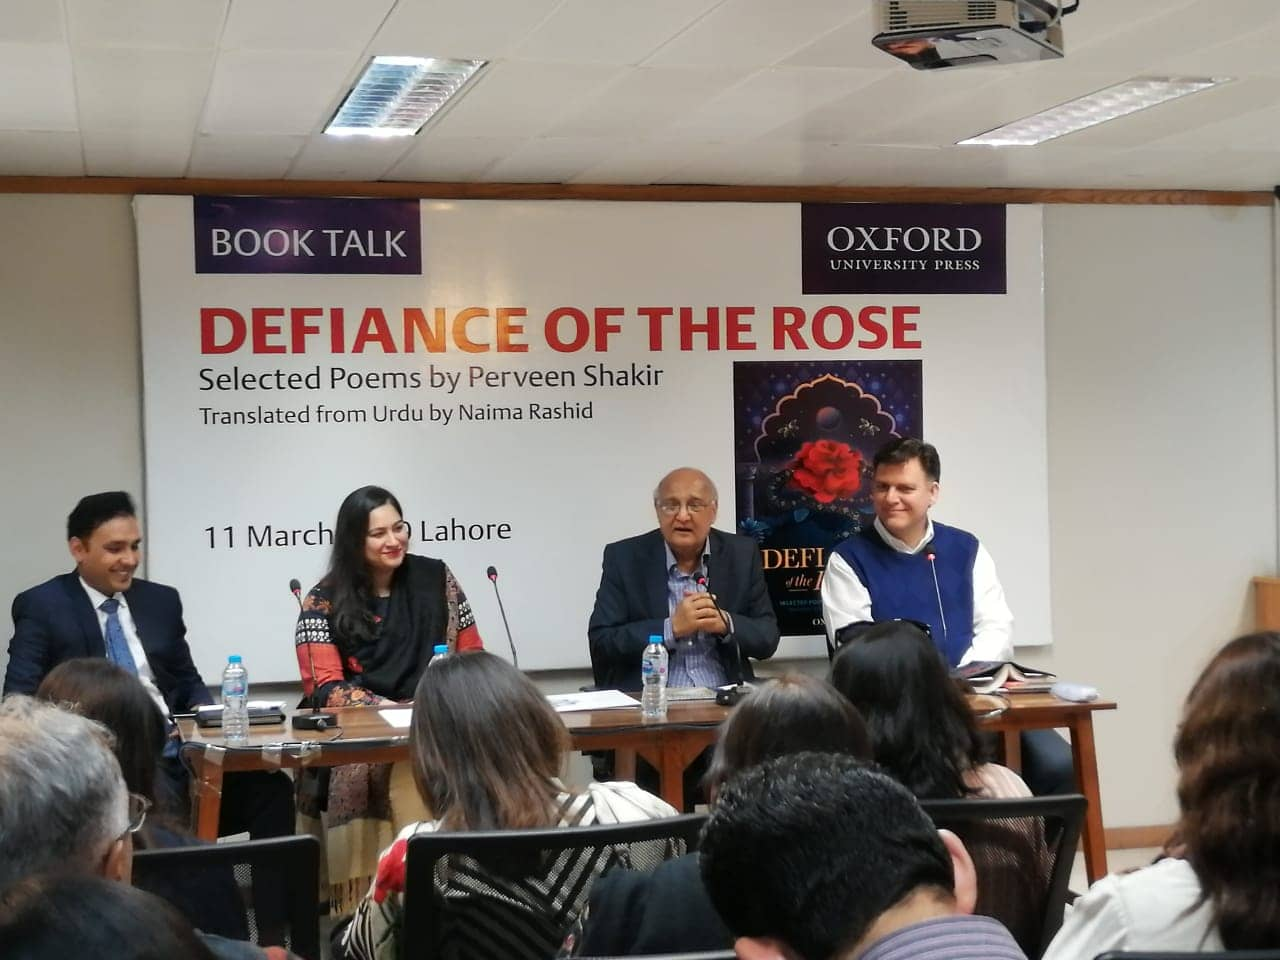 Launch event for Defiance of the Rose, Oxford Bookshop, Lahore